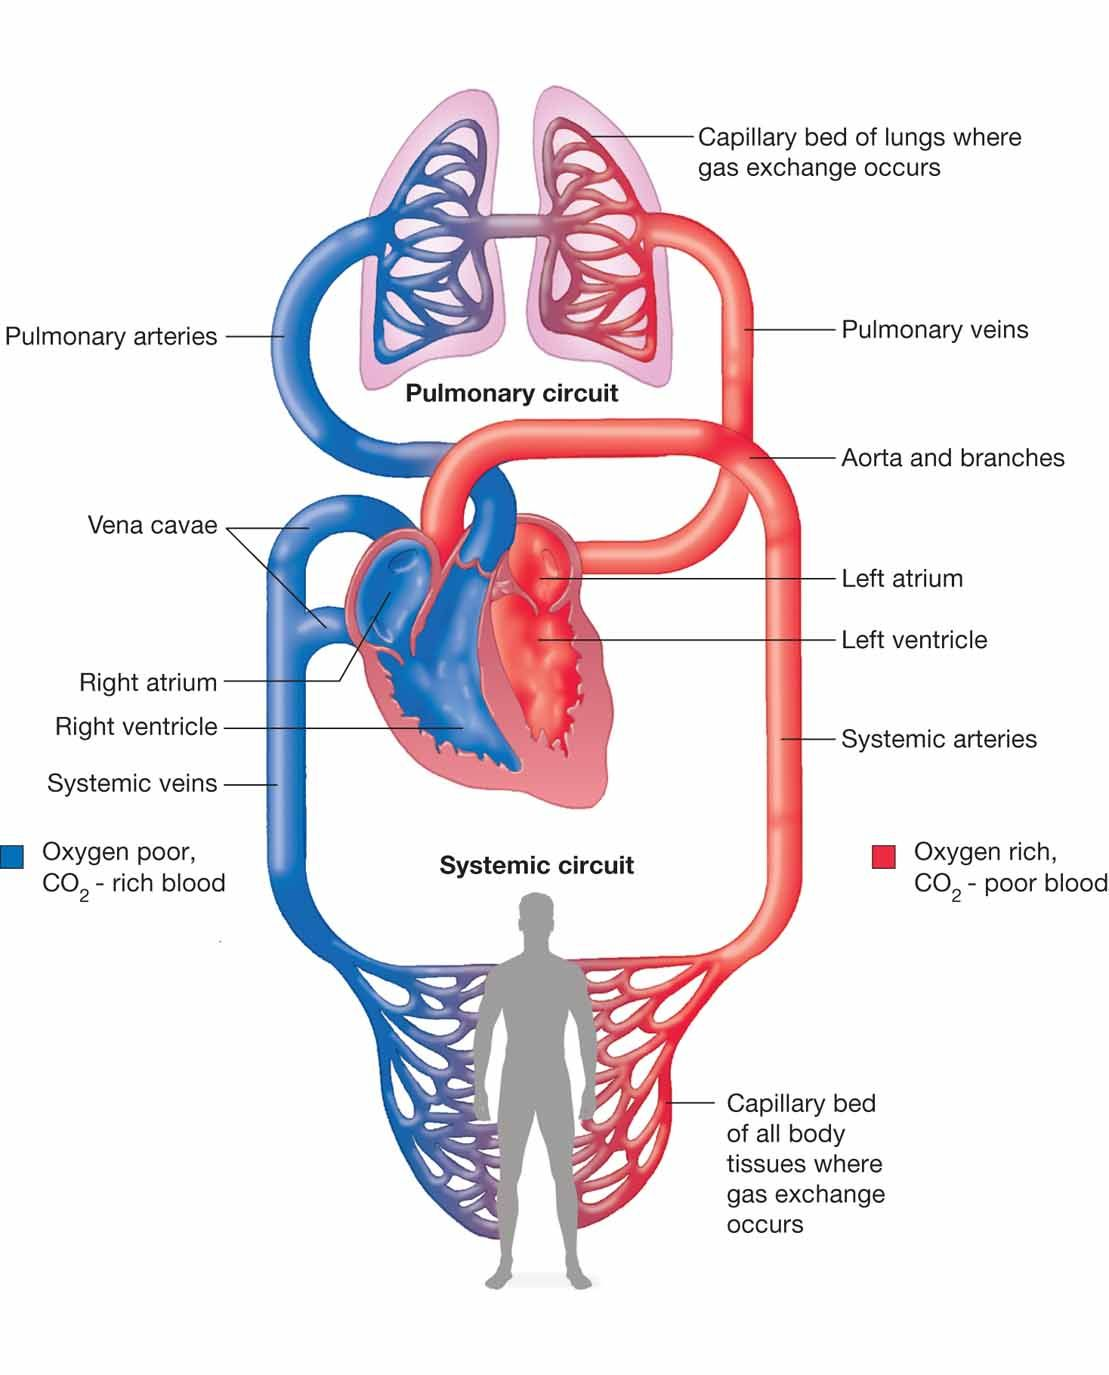 Pulmonary And Systemic Circulation Concept Map.Human Circulatory System Diagram Photos Systemic And Pulmonary